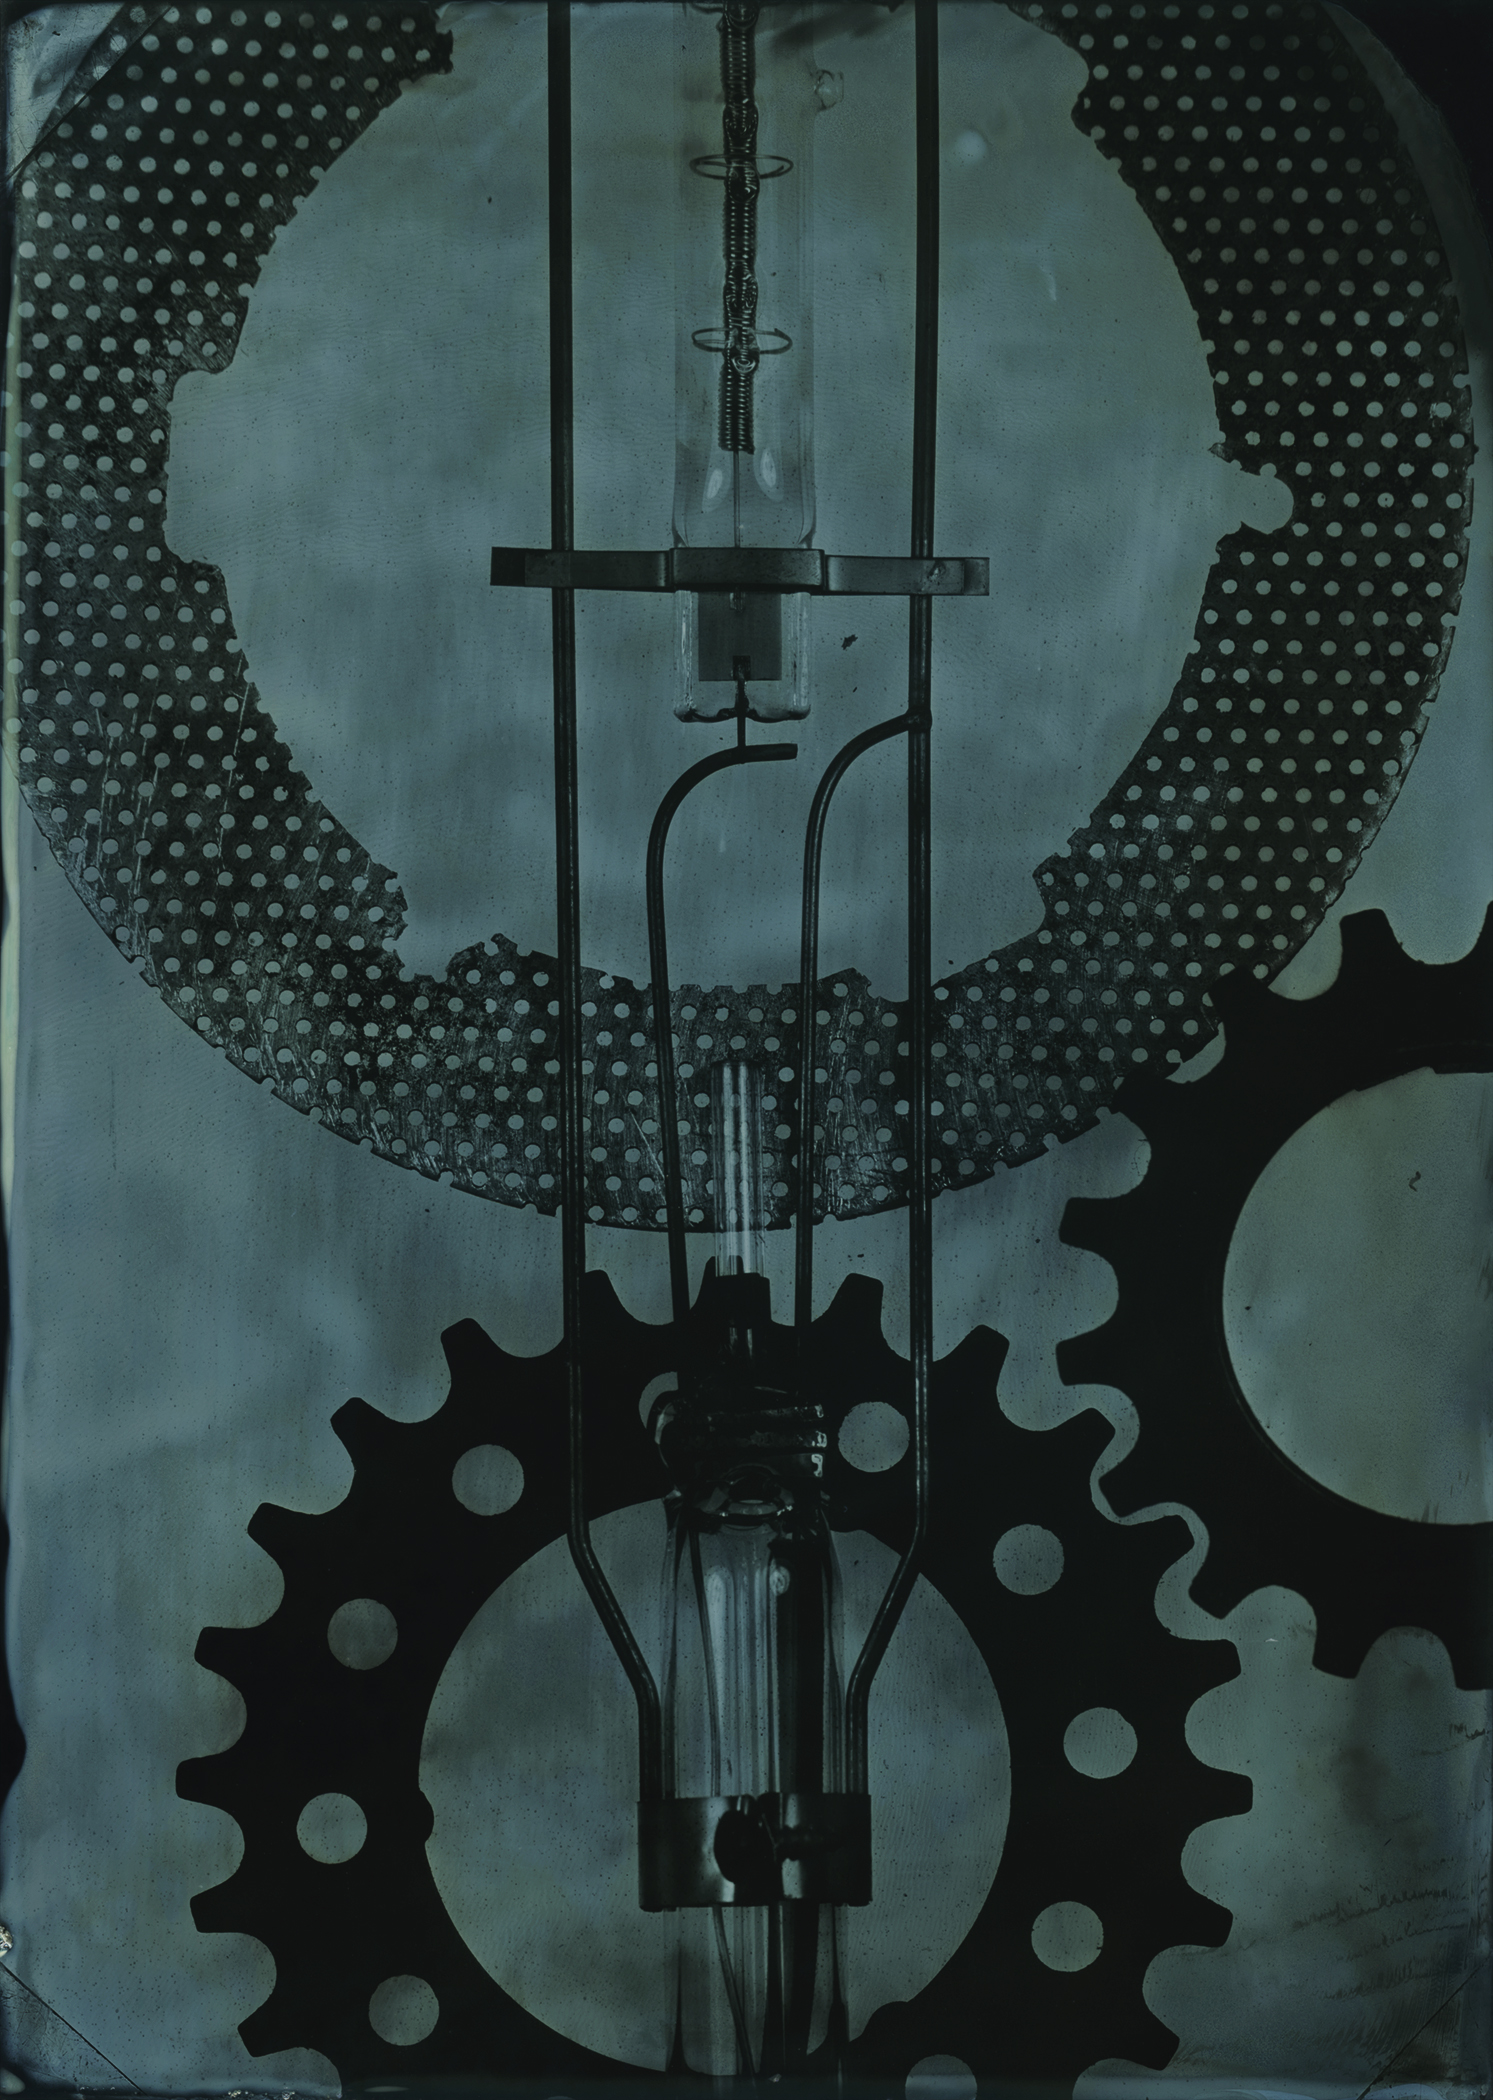 Found: Gears and Bulb